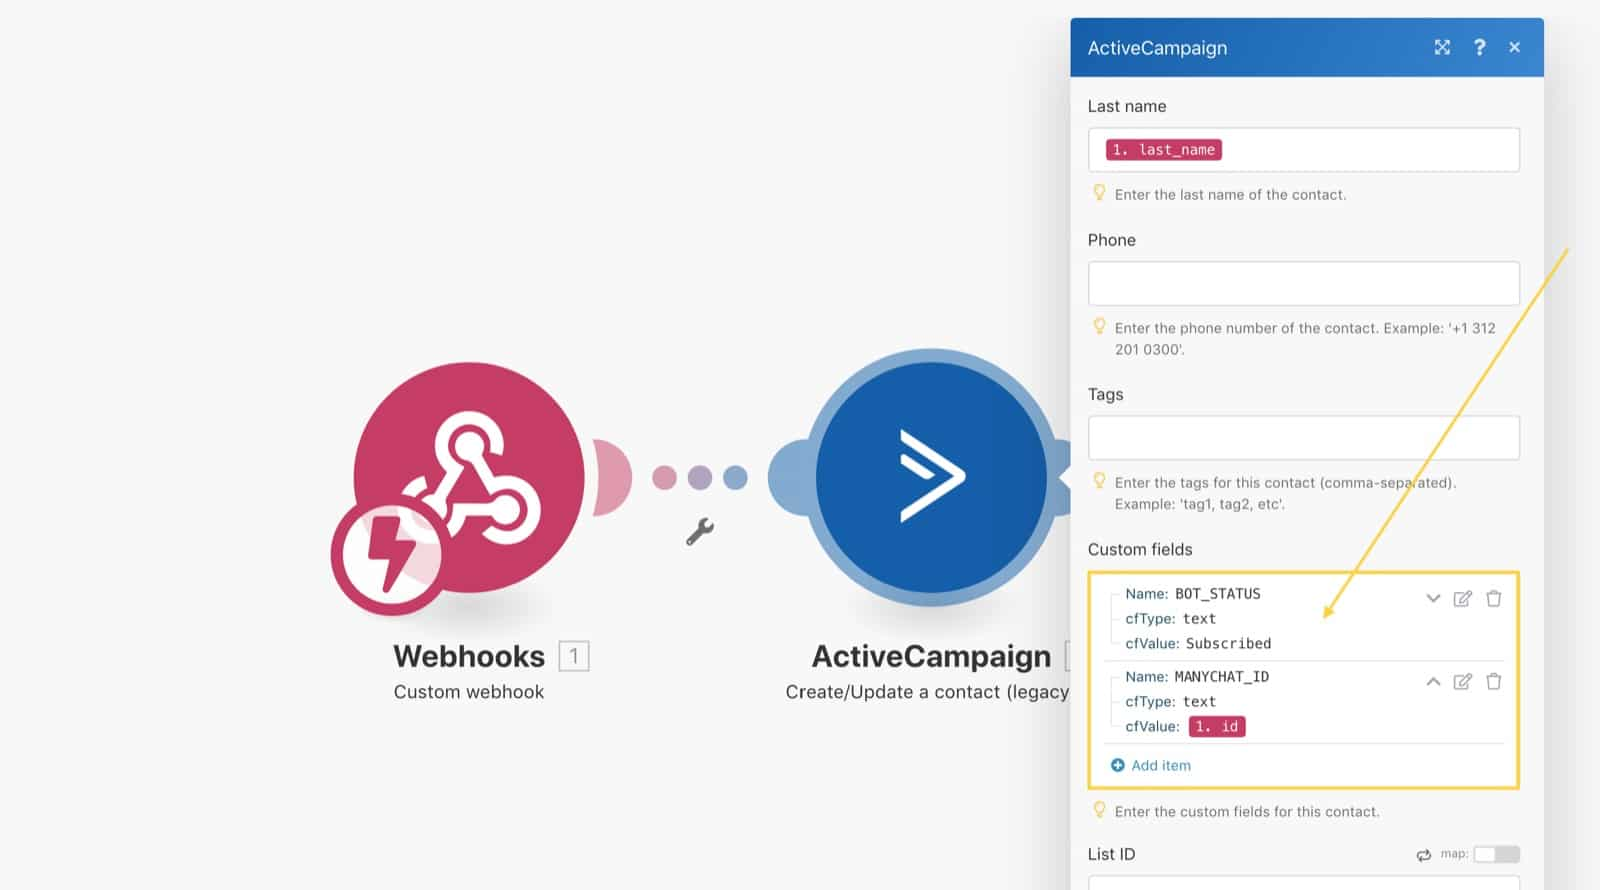 Add data to the ActiveCampaign custom fields